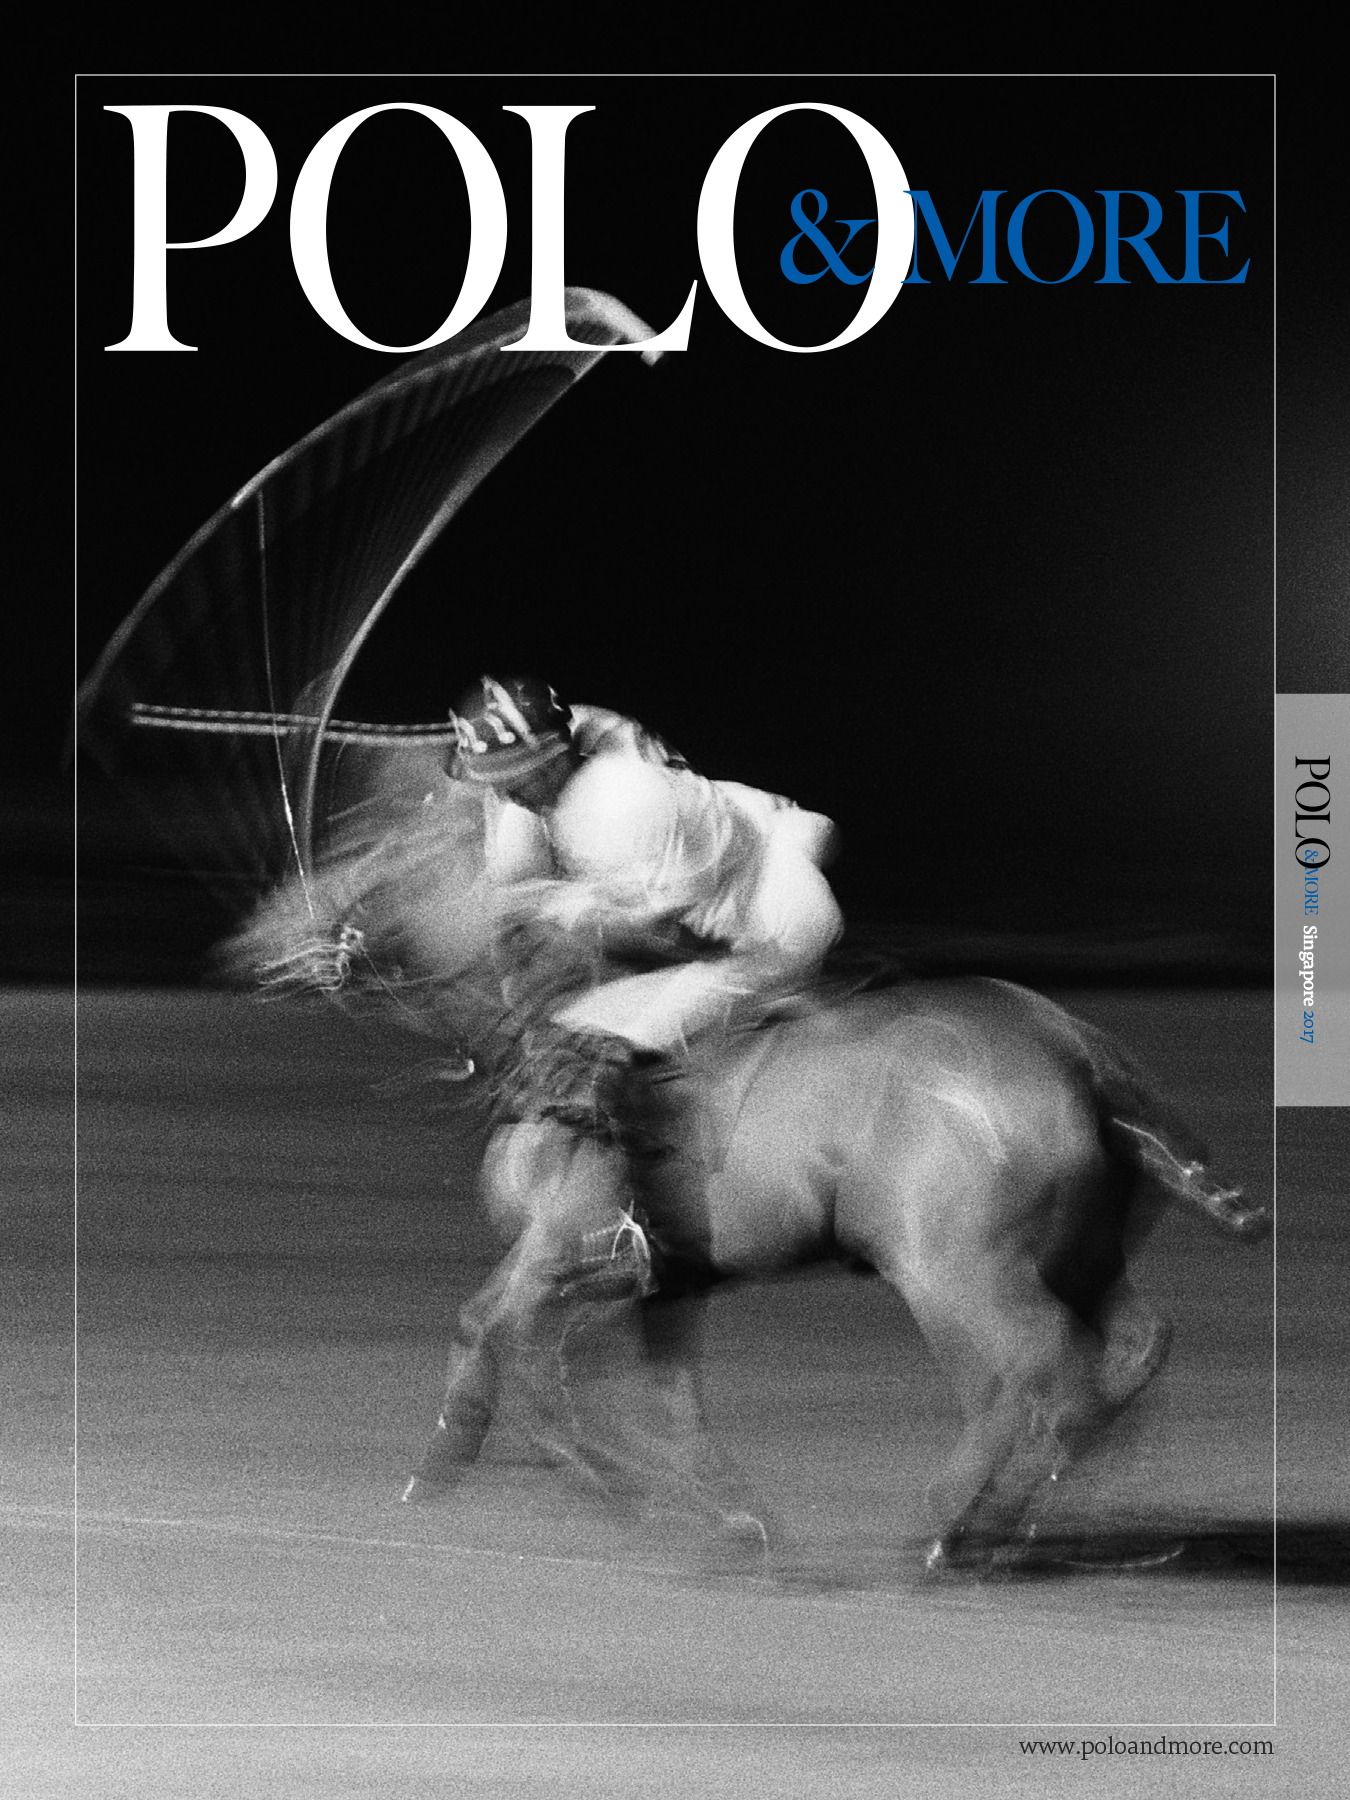 Polo & More 2015 Cover